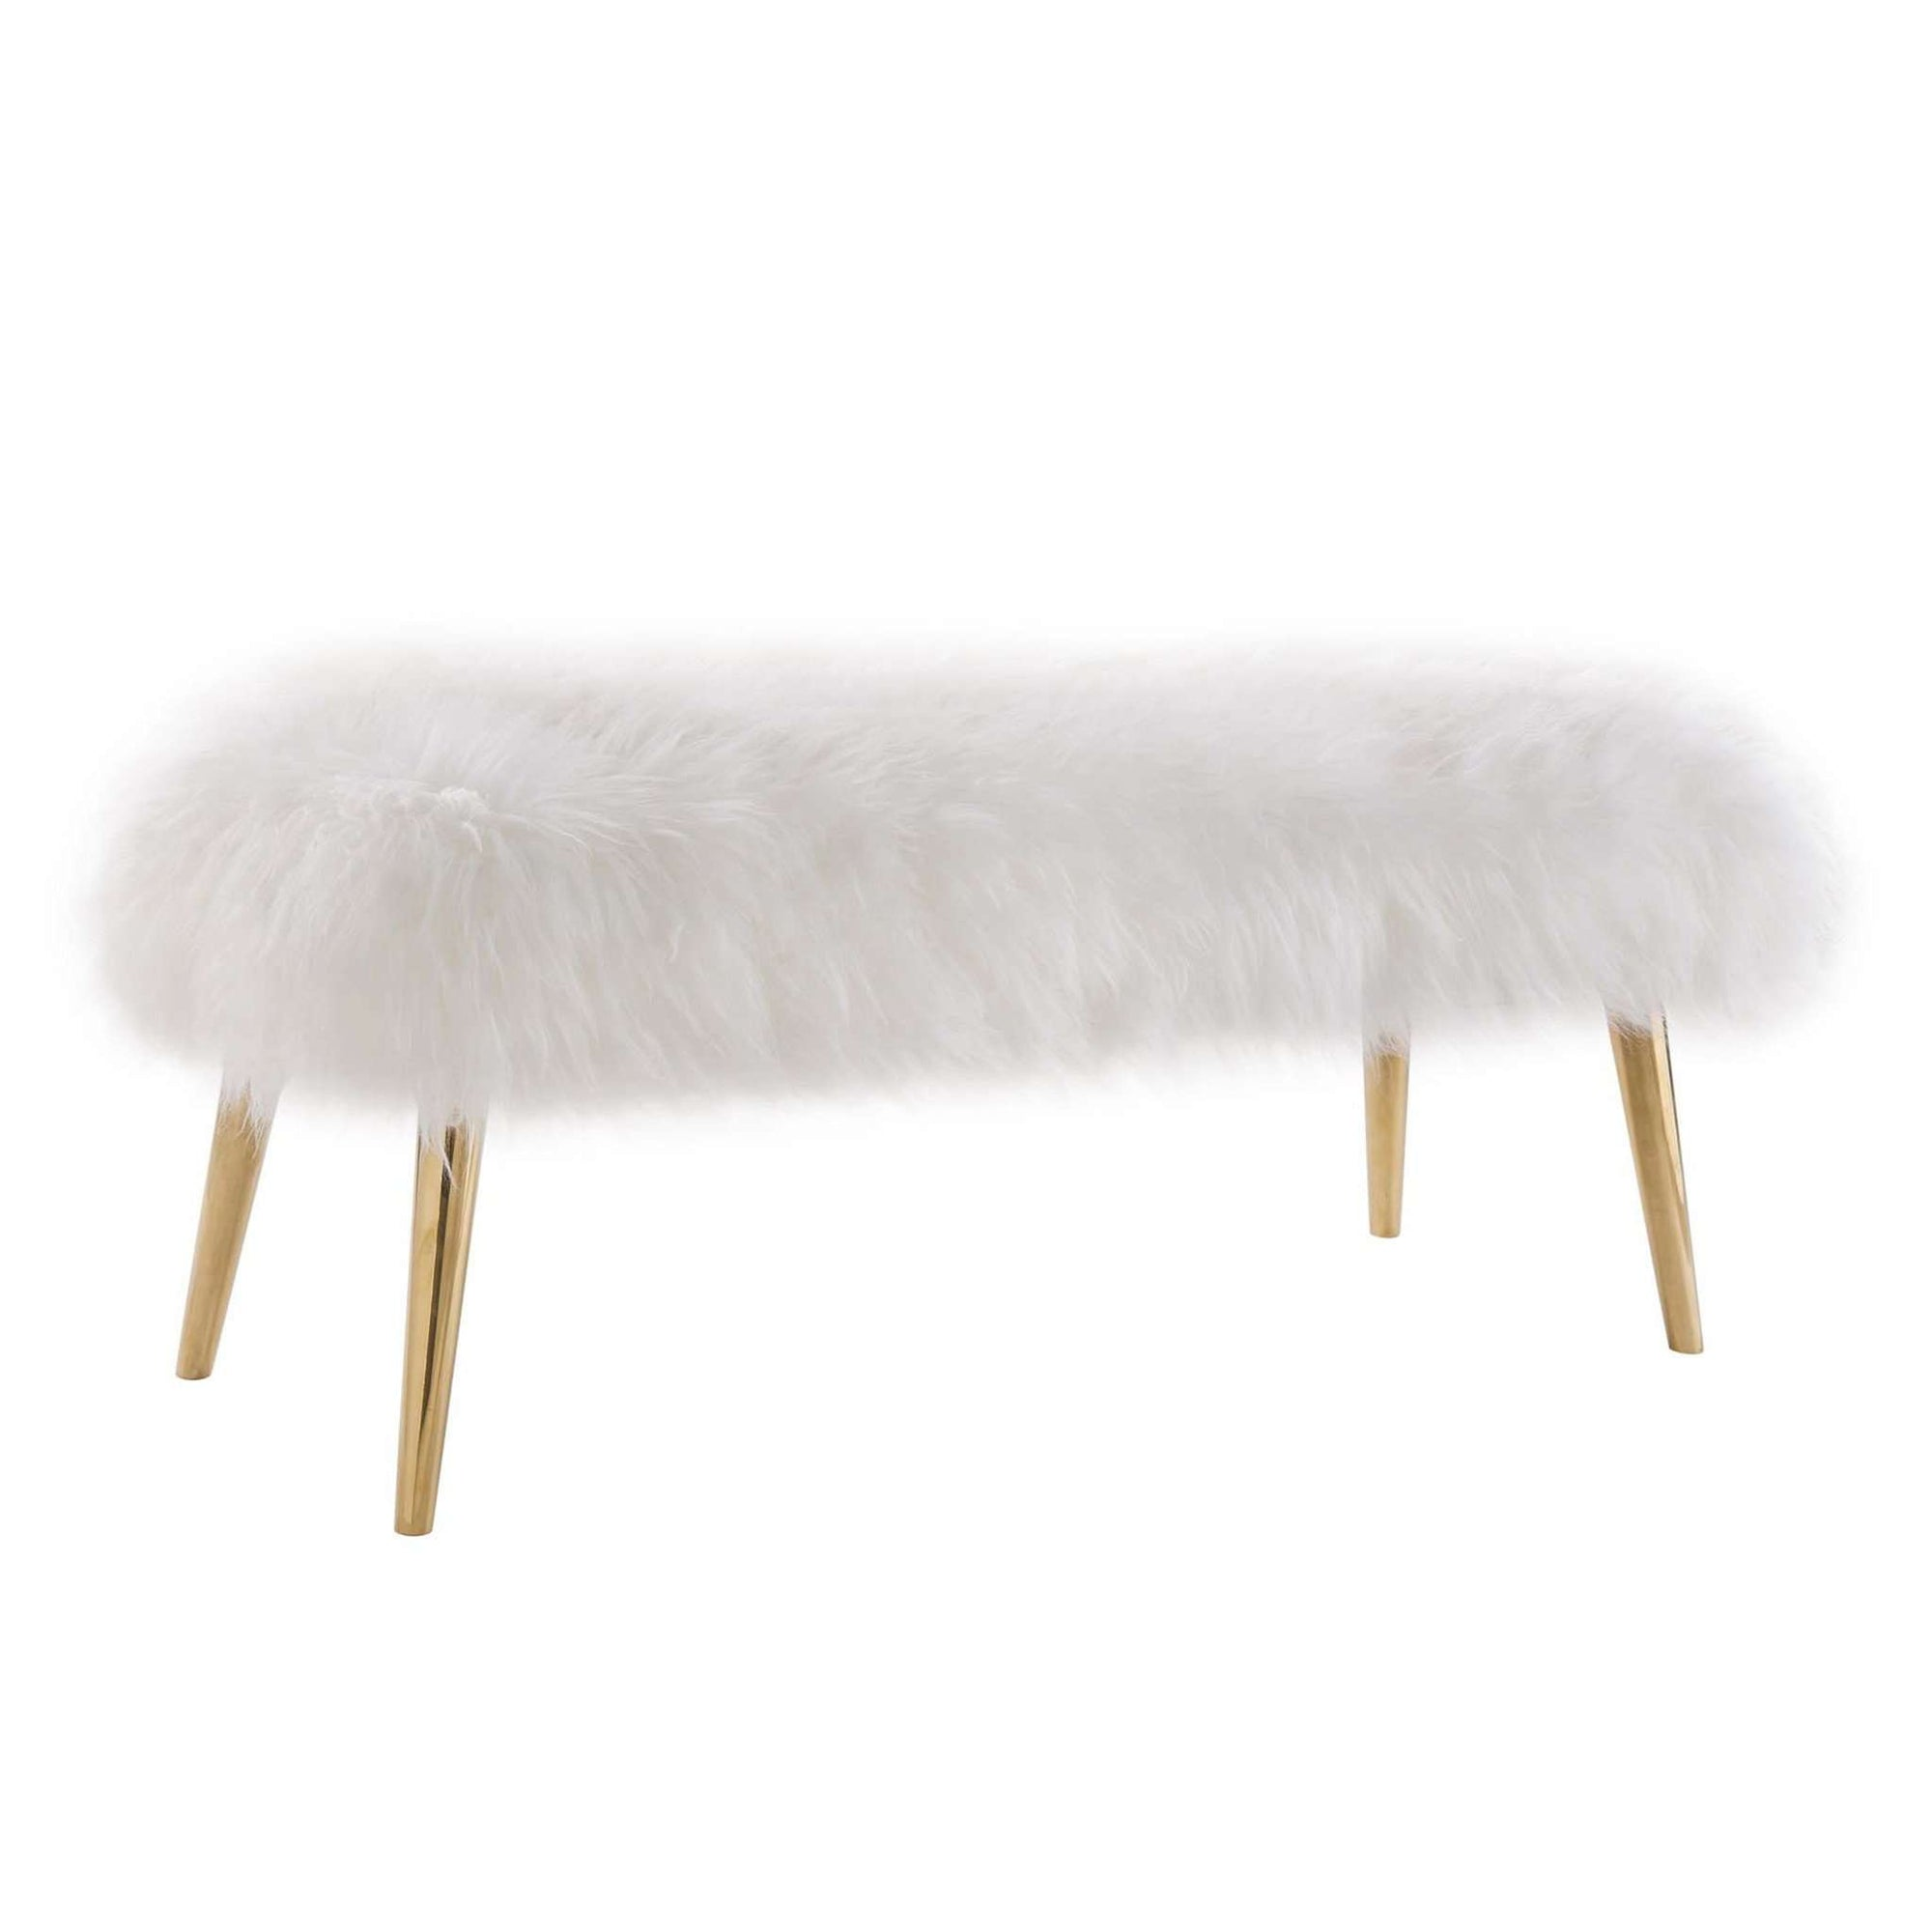 Tov-Churra Sheepskin Bench-Bench-MODTEMPO